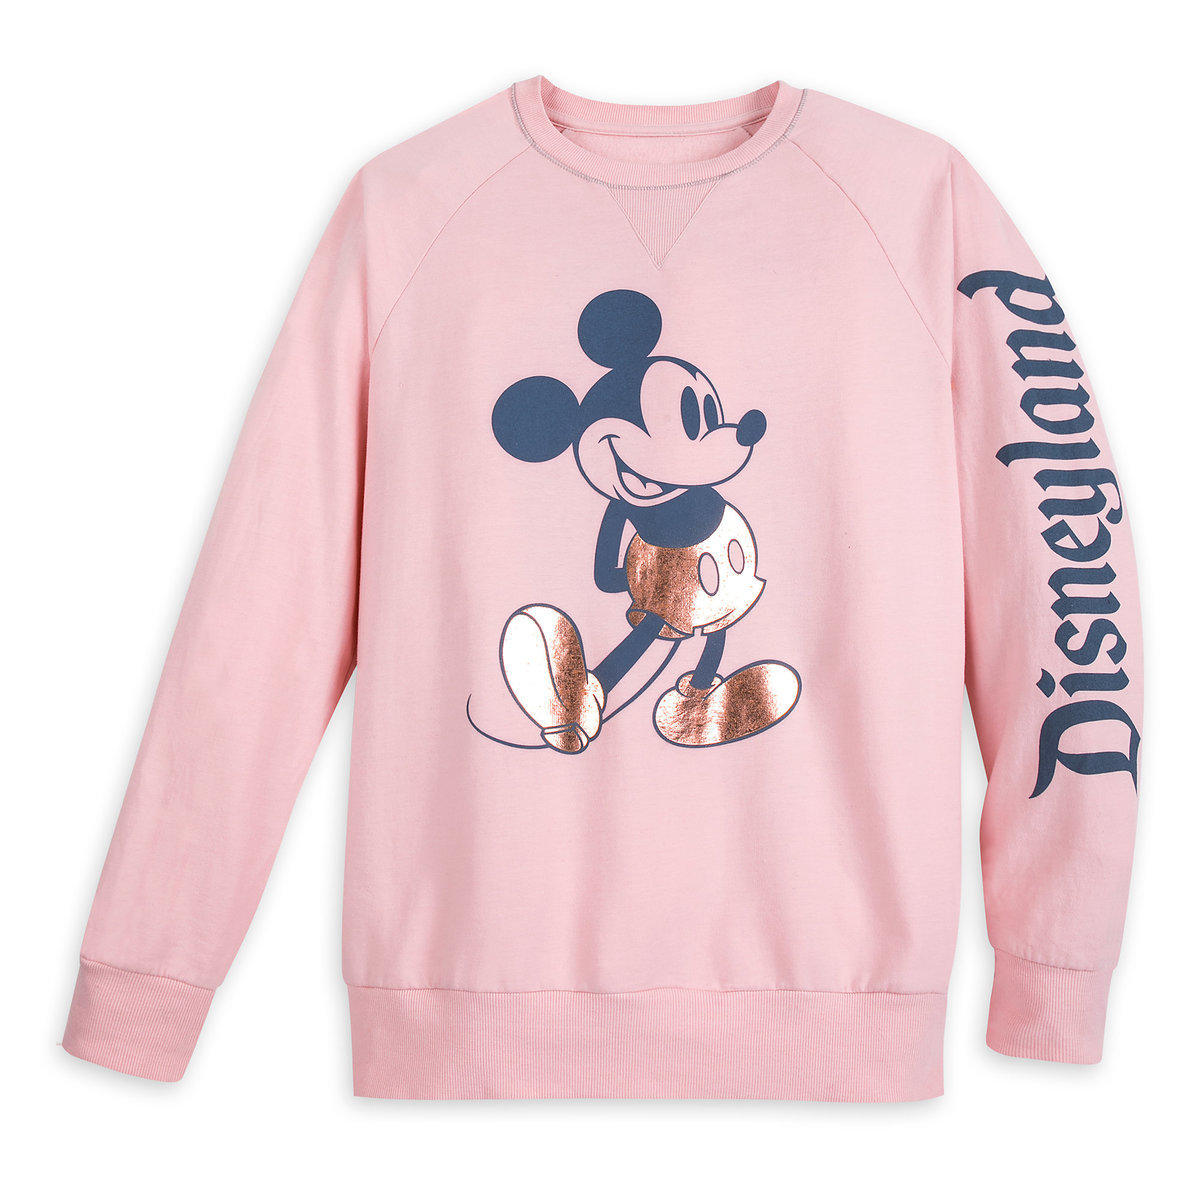 innovative design a6104 34377 Product Image of Mickey Mouse Sweatshirt for Adults - Disneyland - Briar  Rose Gold   1